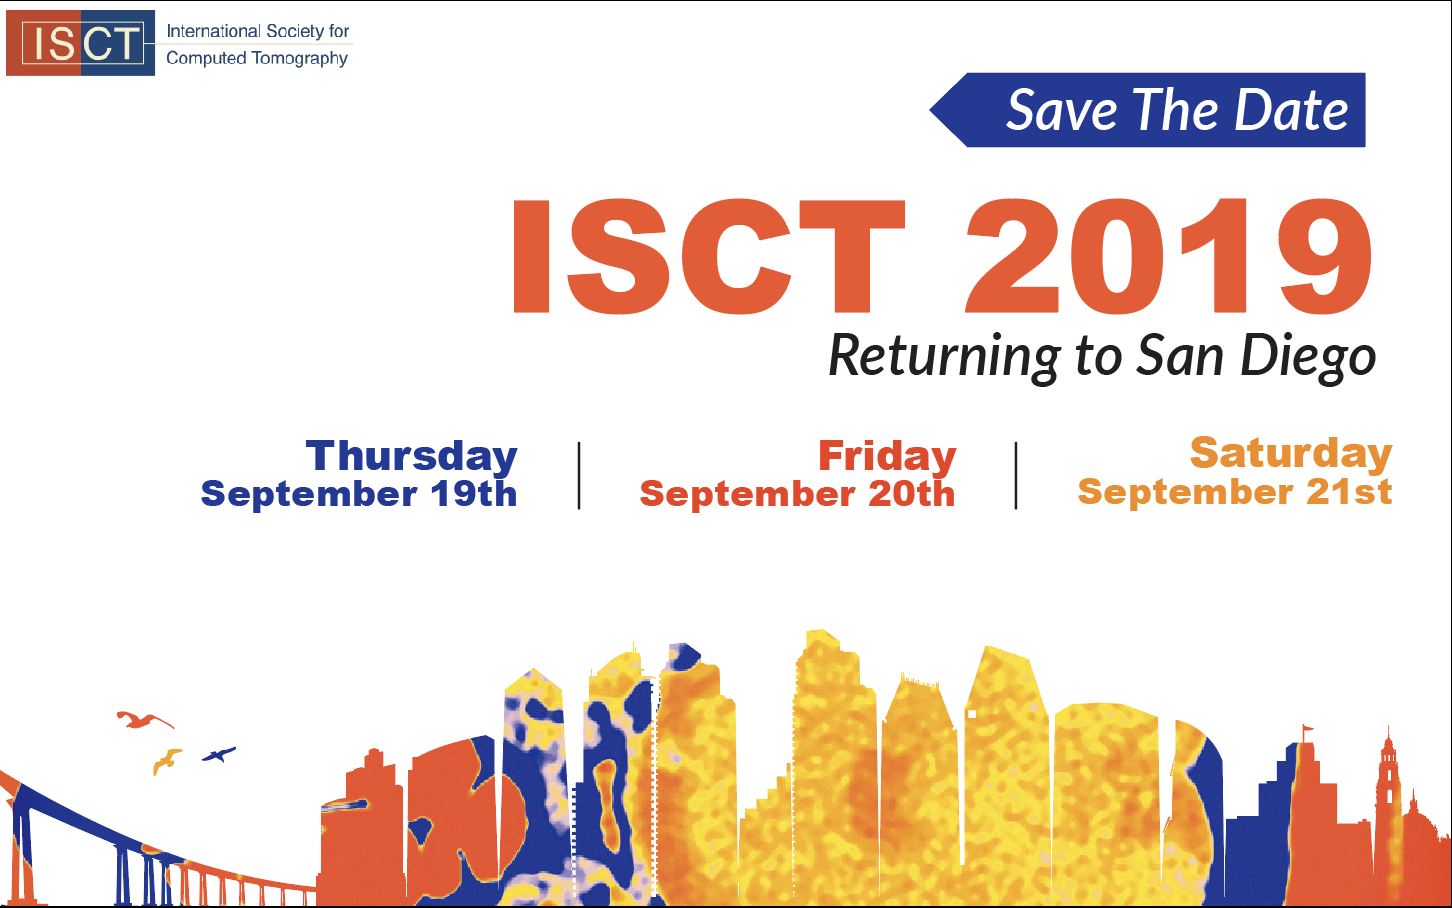 ISCT 2019, save the date, ISCT 2018 conference date